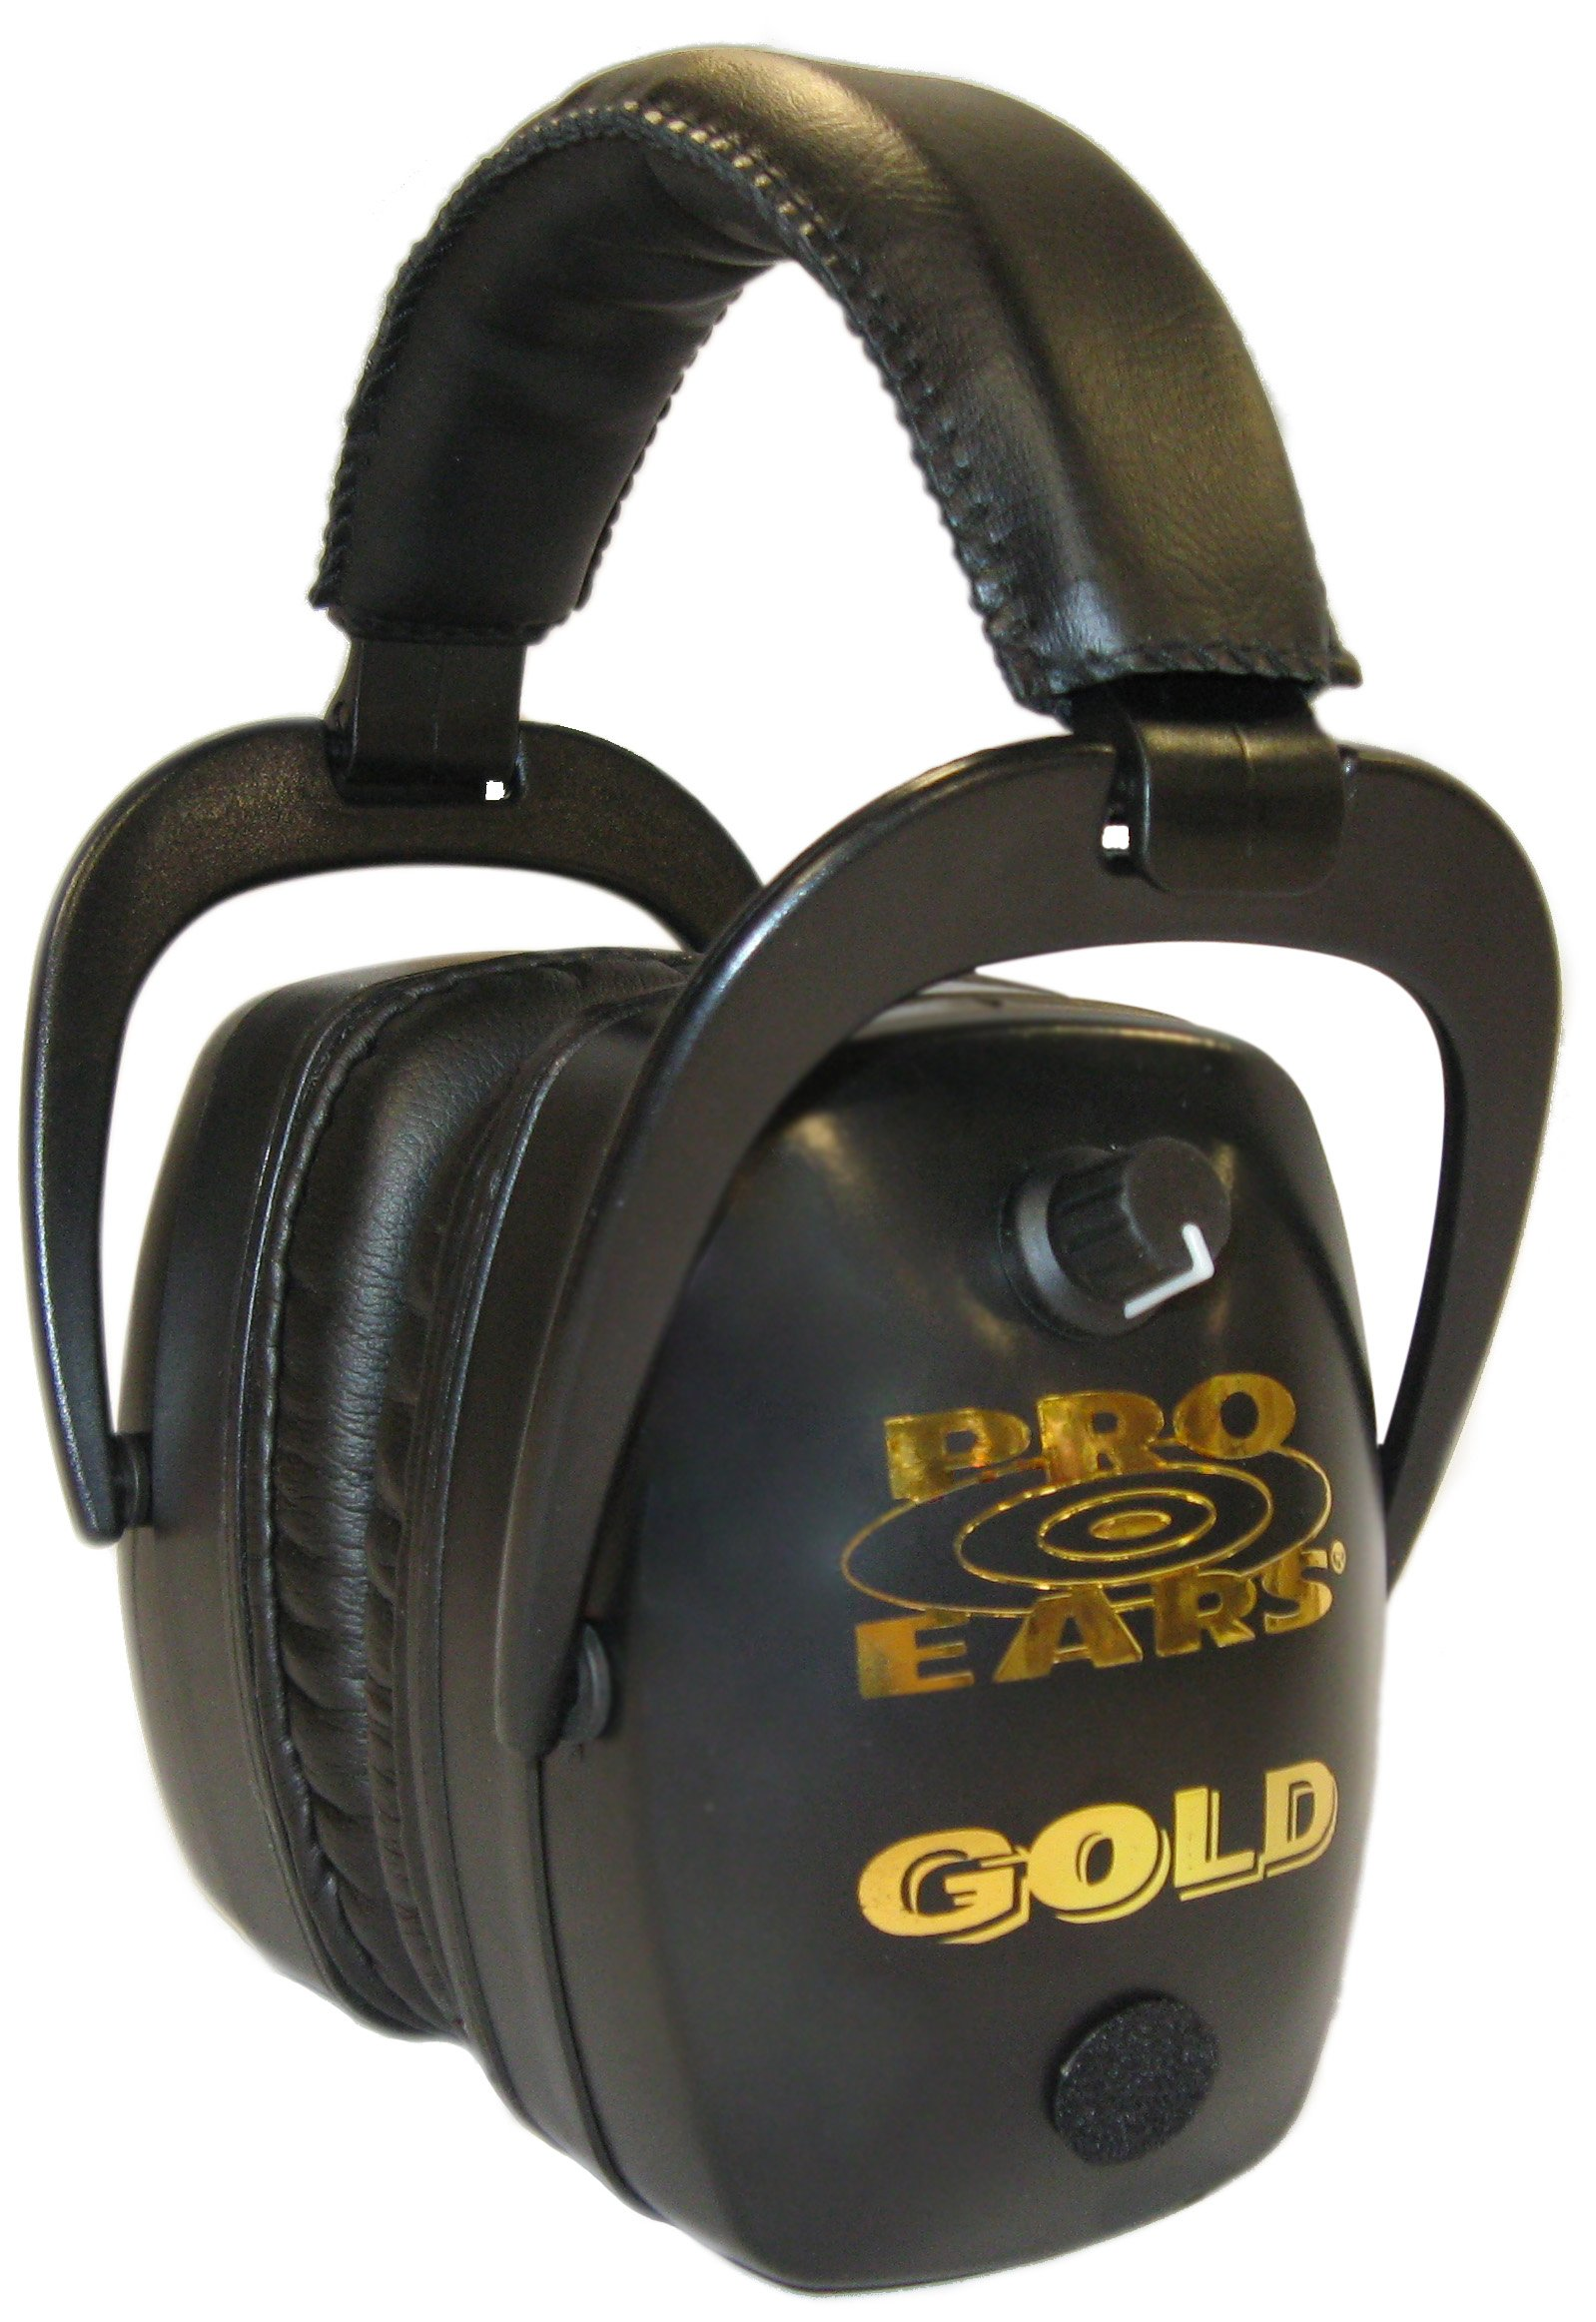 Pro Ears Pro Mag Gold Hearing Protection and Amplification Ear Muffs, Black